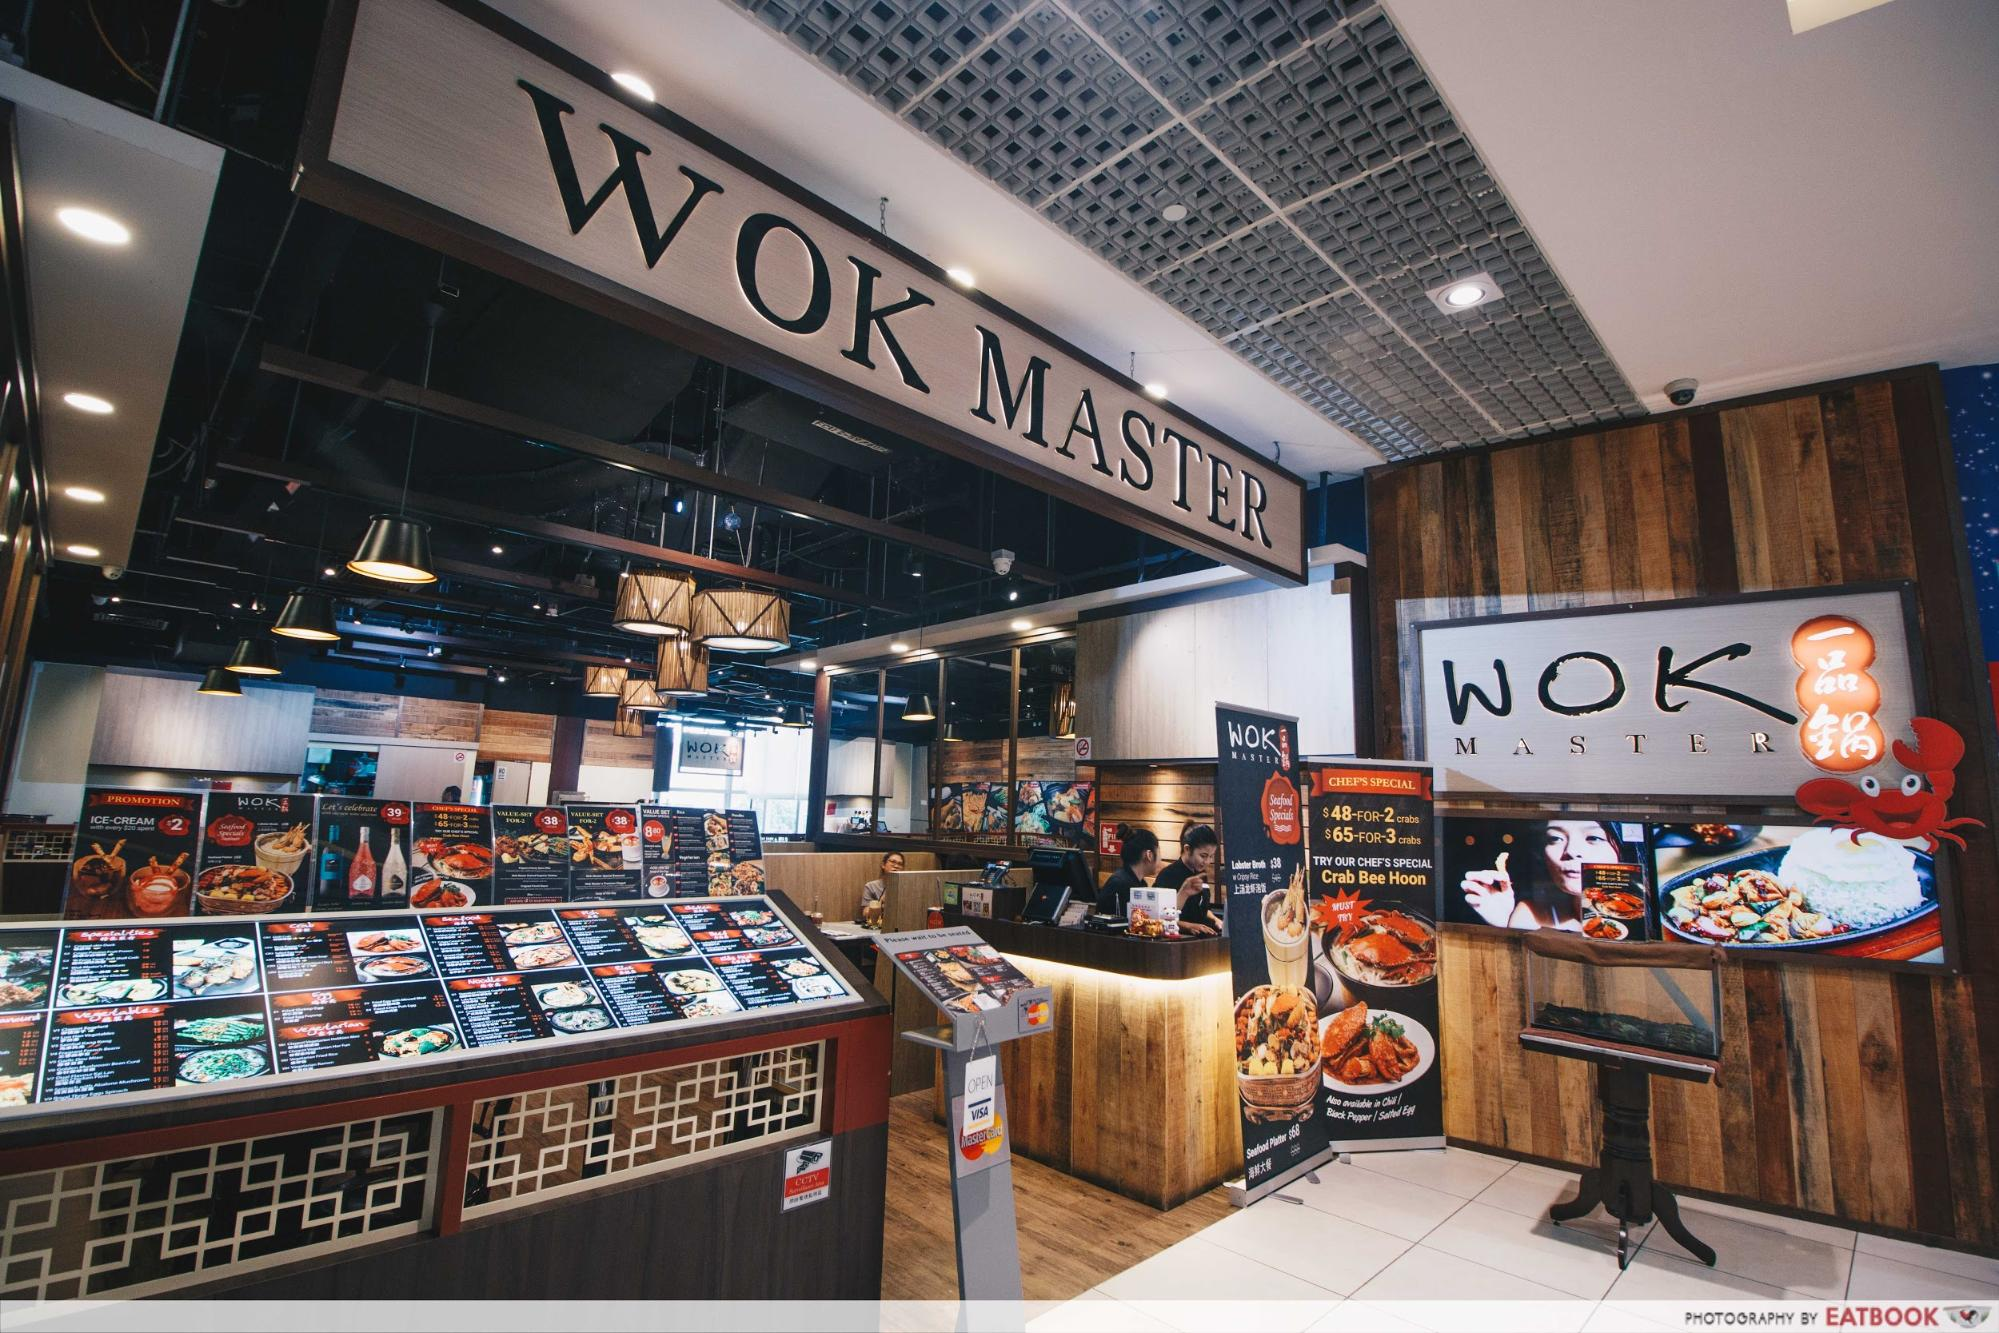 New New Restaurant City Square Mall - Wok Master City Square Mall - Wok Master